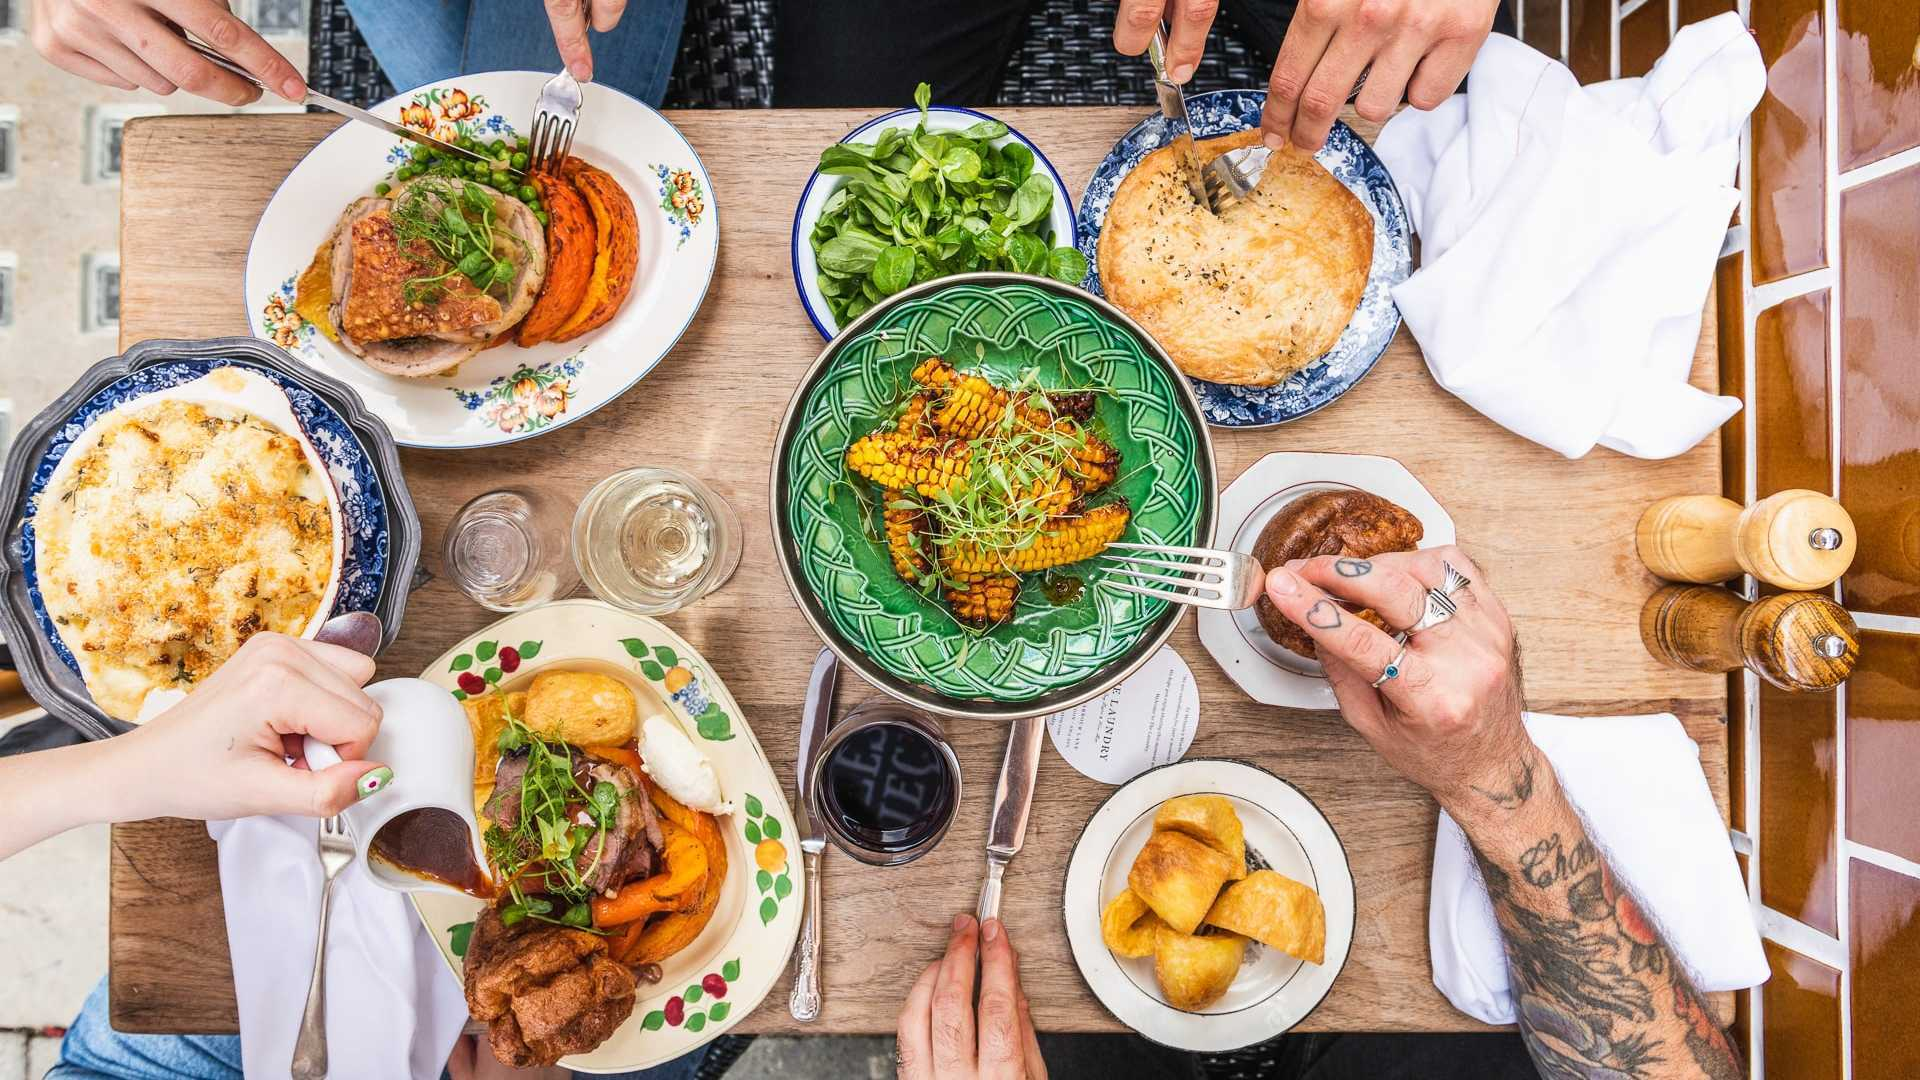 This is a photo of The Laundry's roast dinner in Brixton.